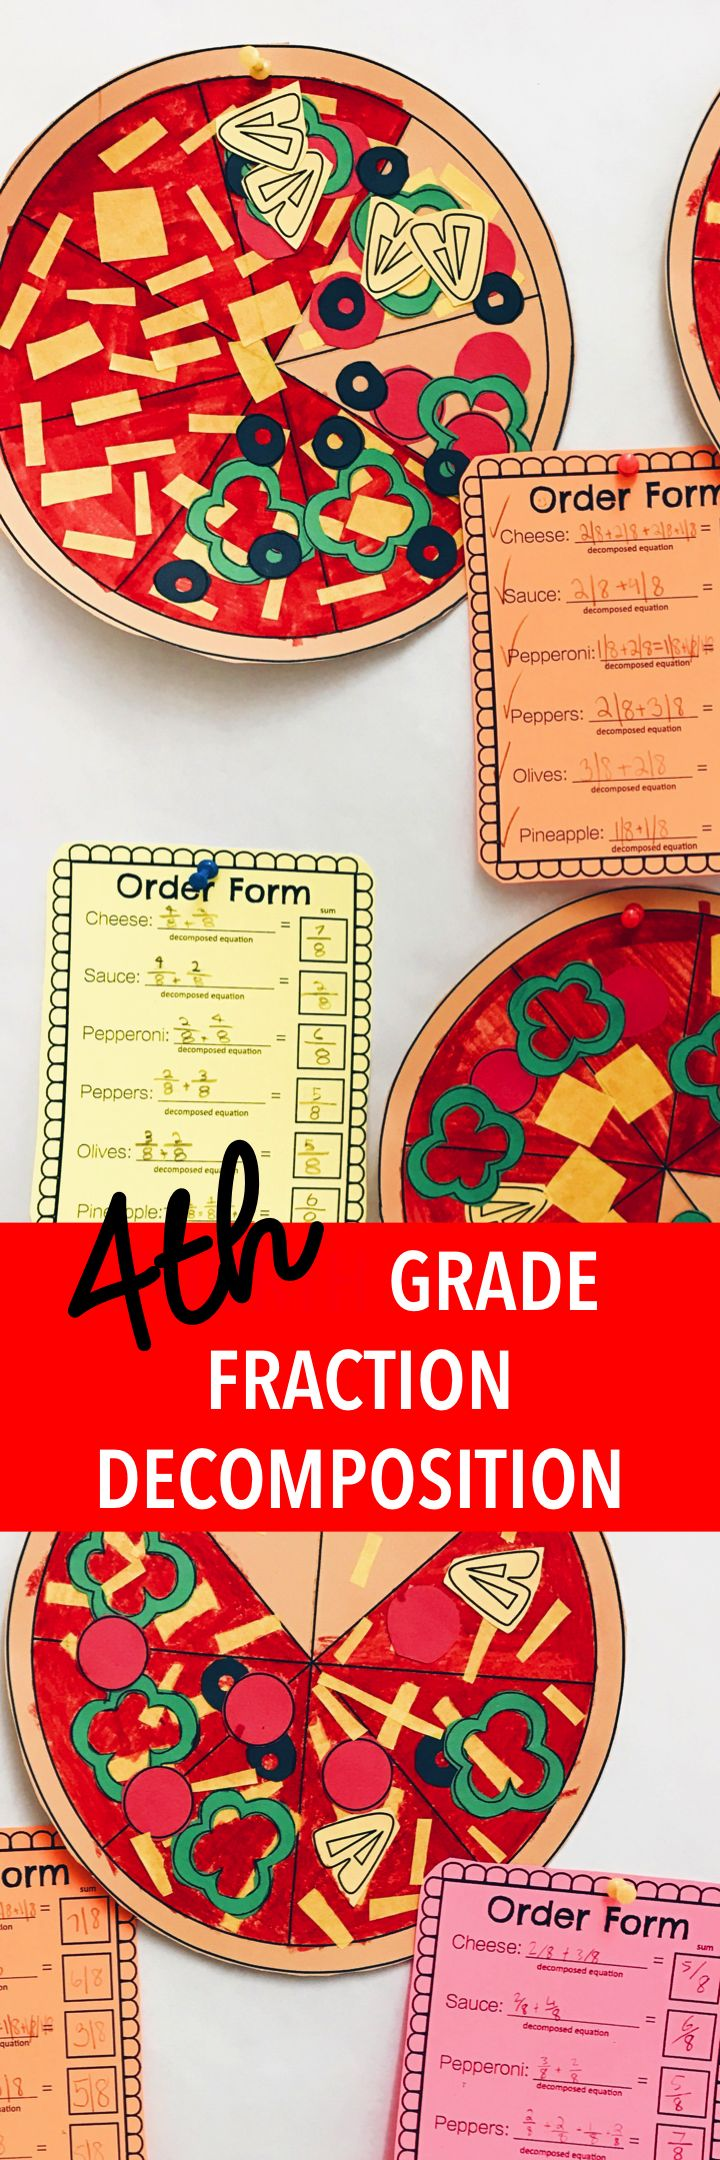 Fourth grade fraction decomposition project. Make these fourth grade fraction pizzas in math to help your students with adding fractions with like denominators.